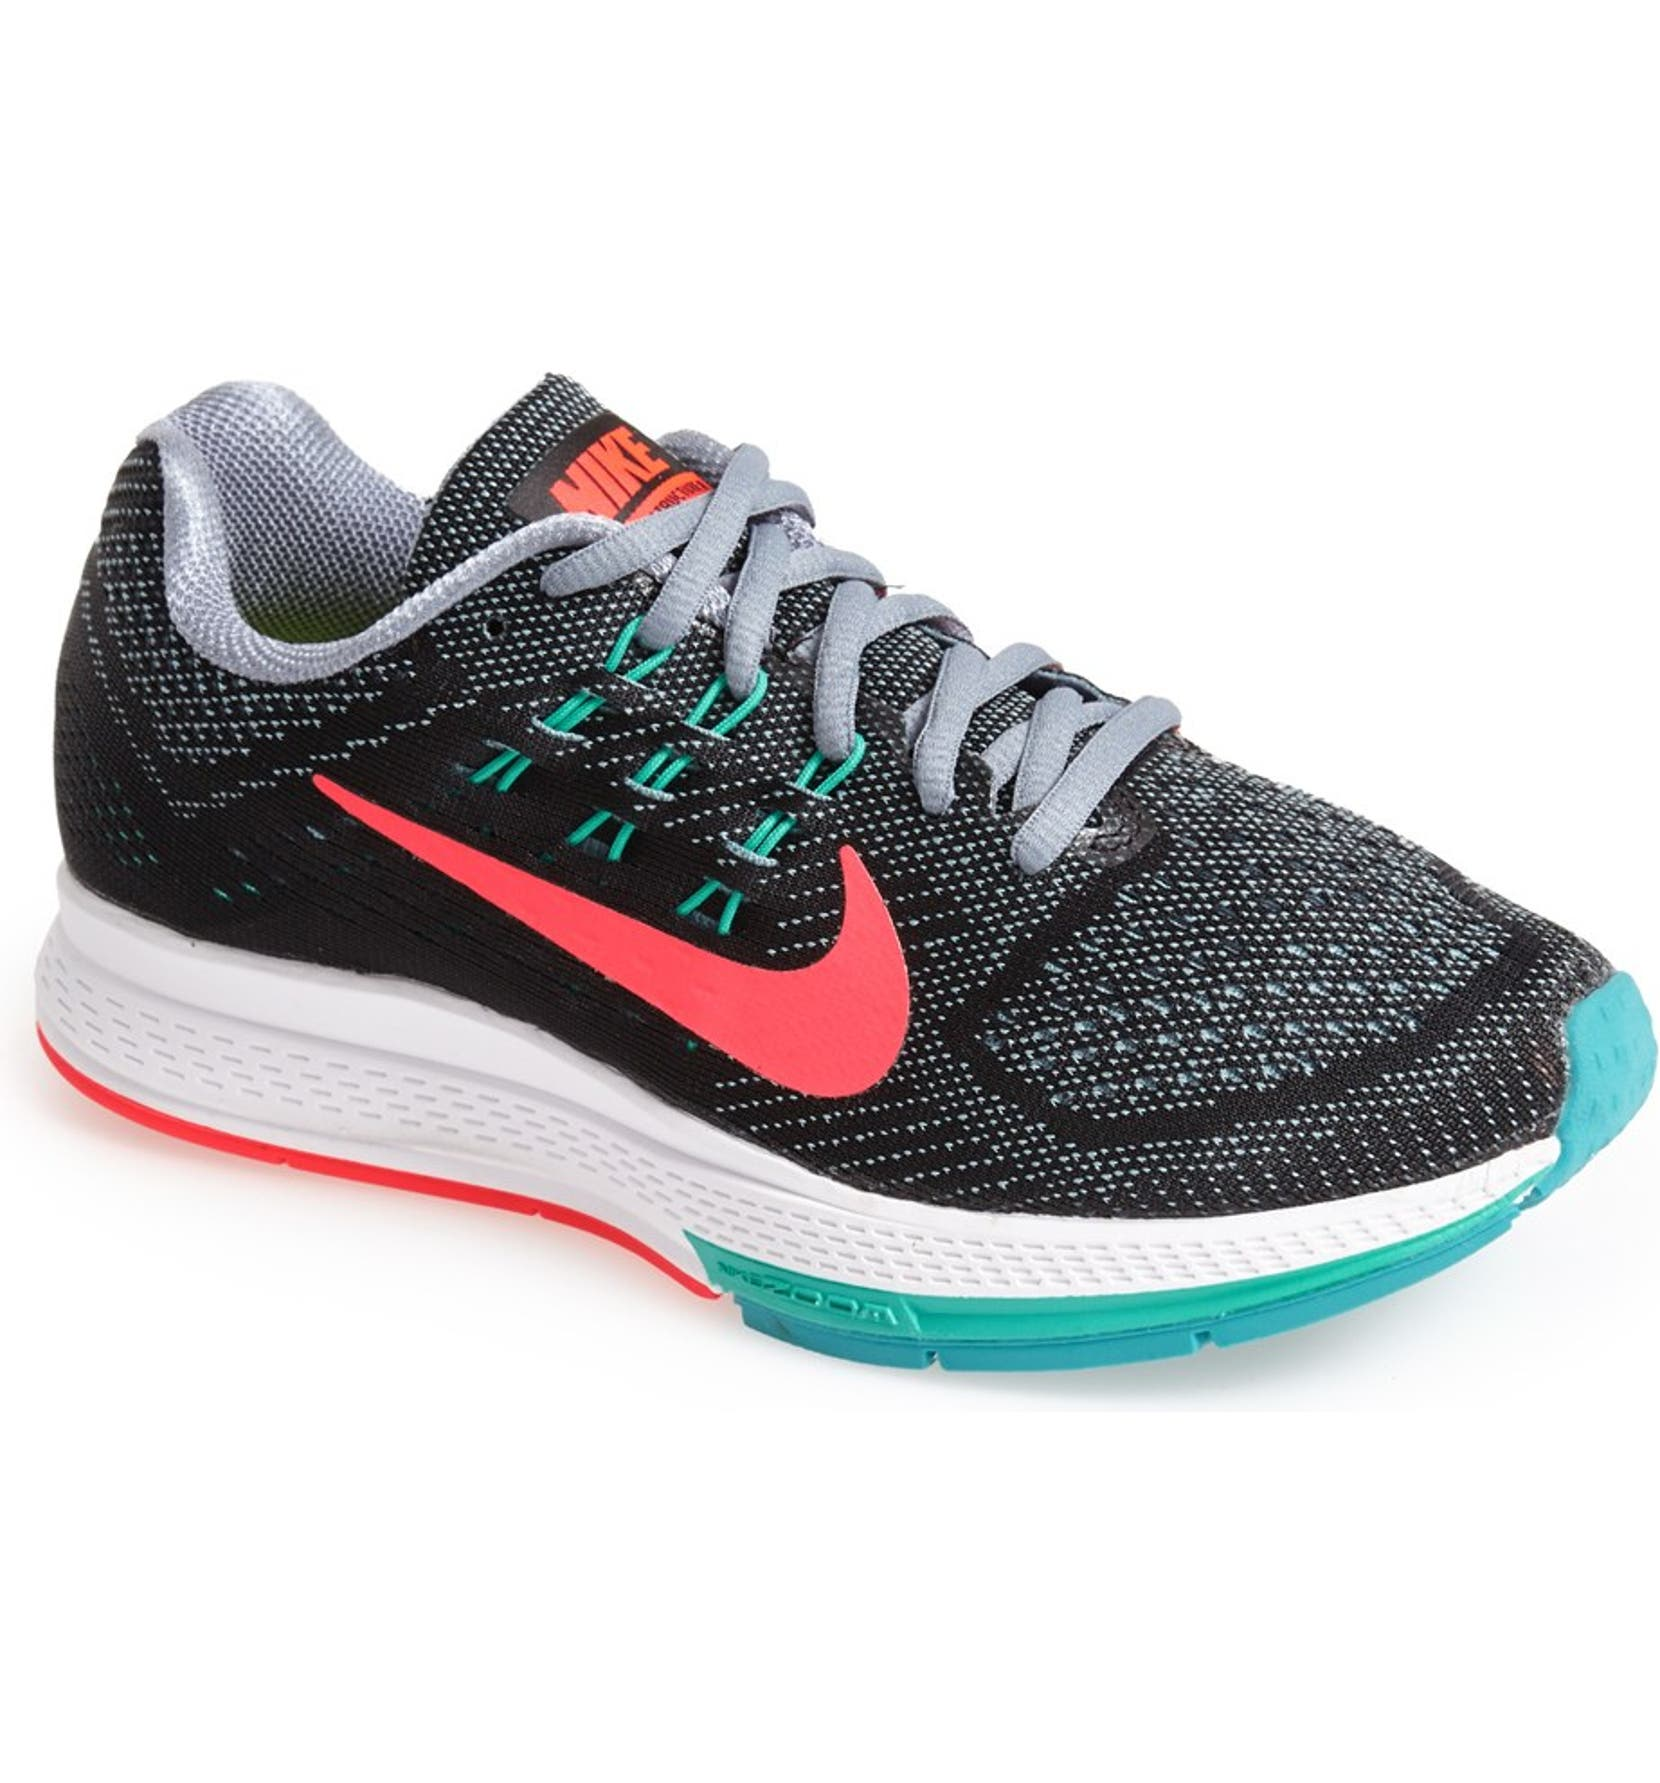 size 40 abd6c 2ddc7 Nike 'Air Zoom Structure 18' Running Shoe (Wide) (Women ...